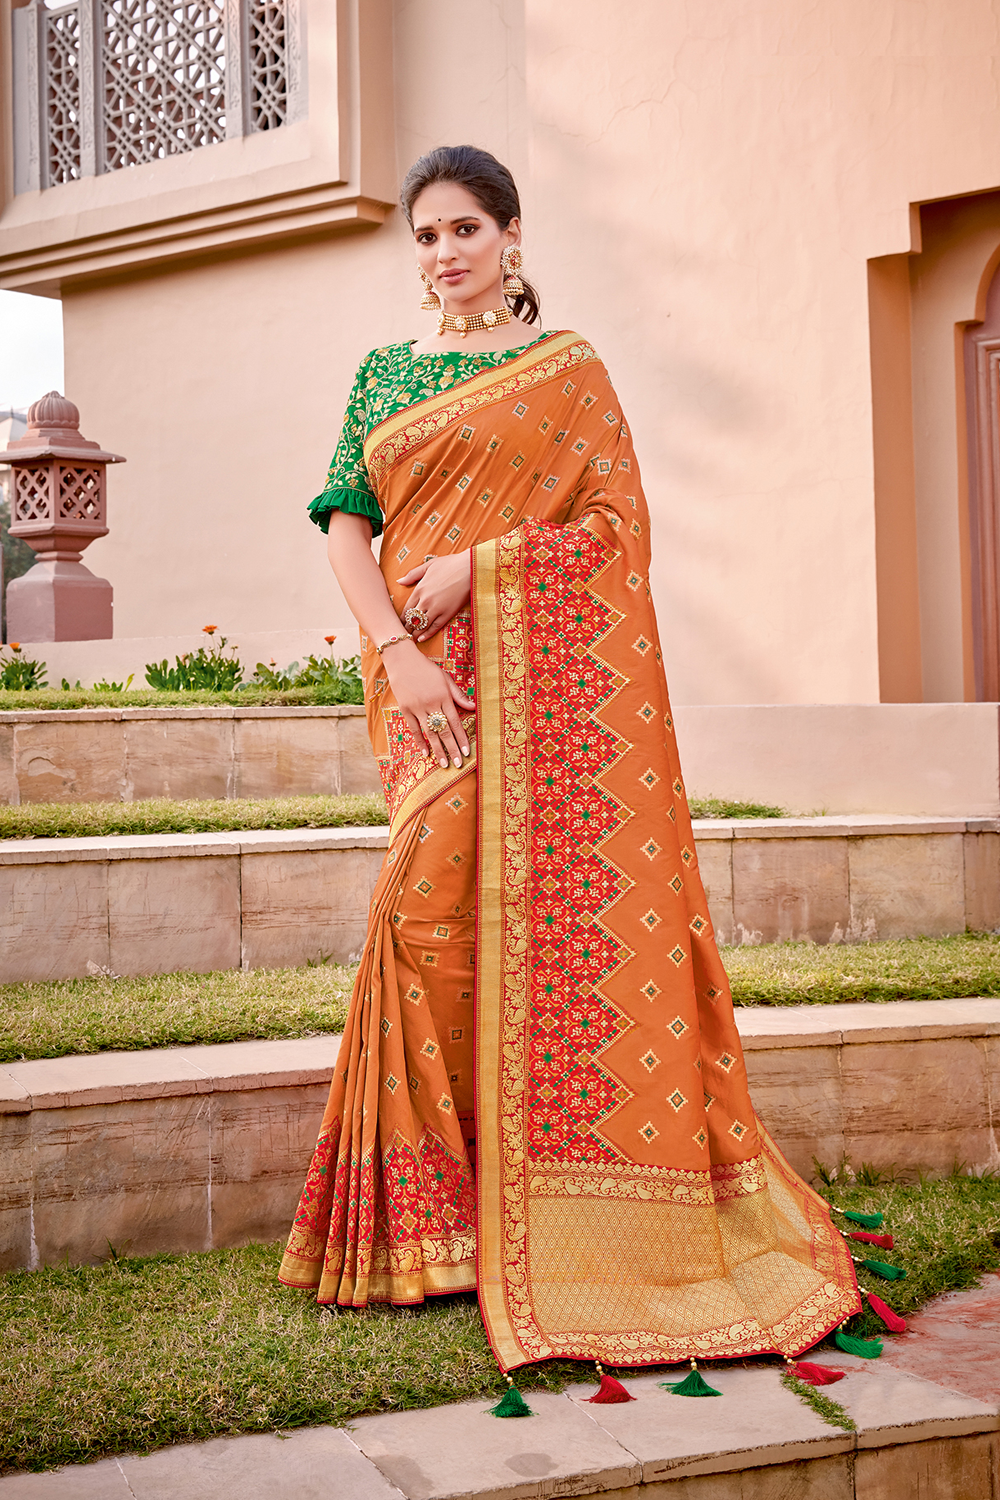 An excellent combination of Indian saffron and fresh green saree